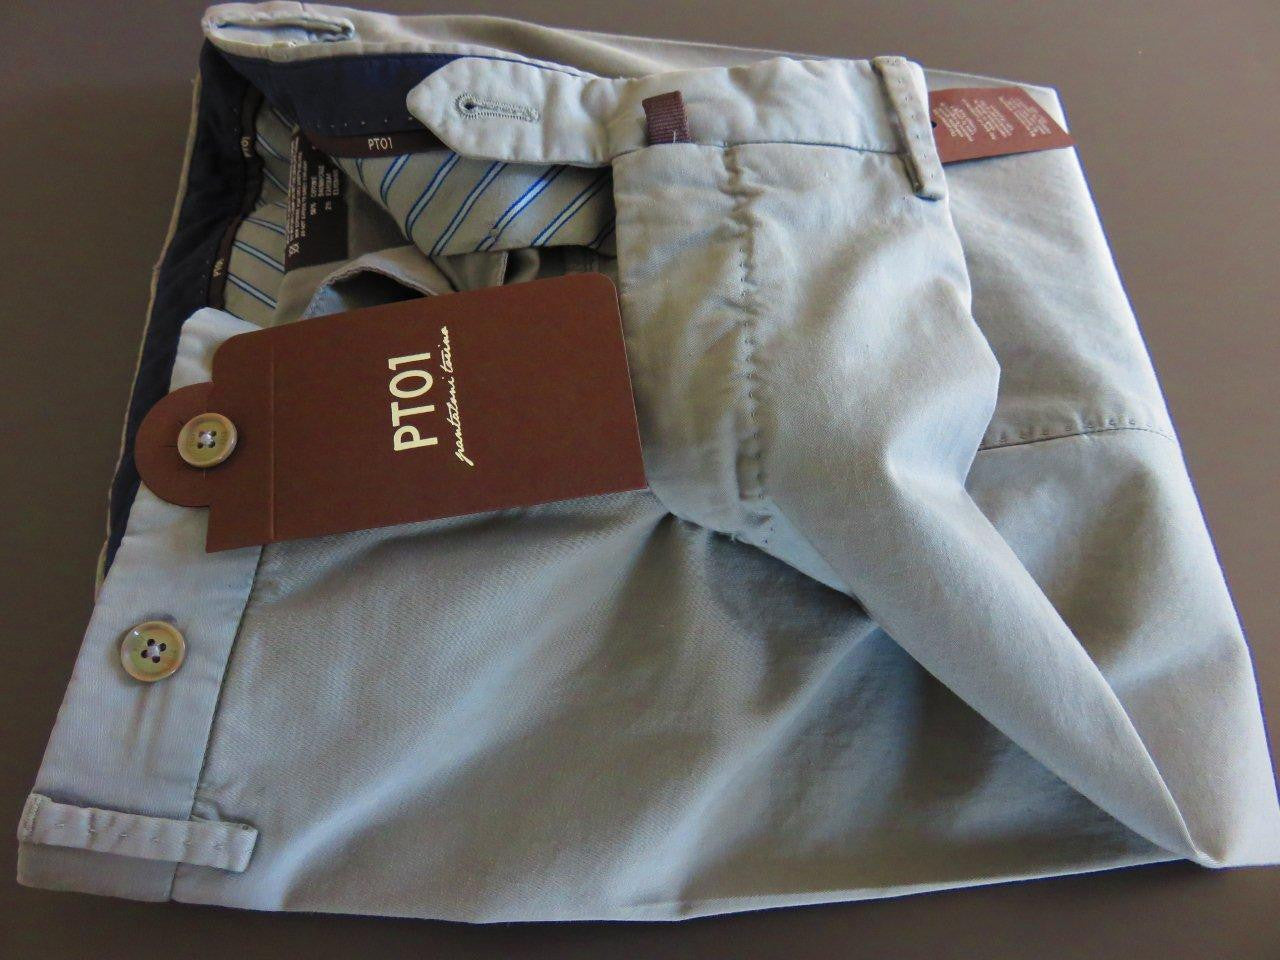 PT01 Pantaloni Torino - French pocket (various colours)